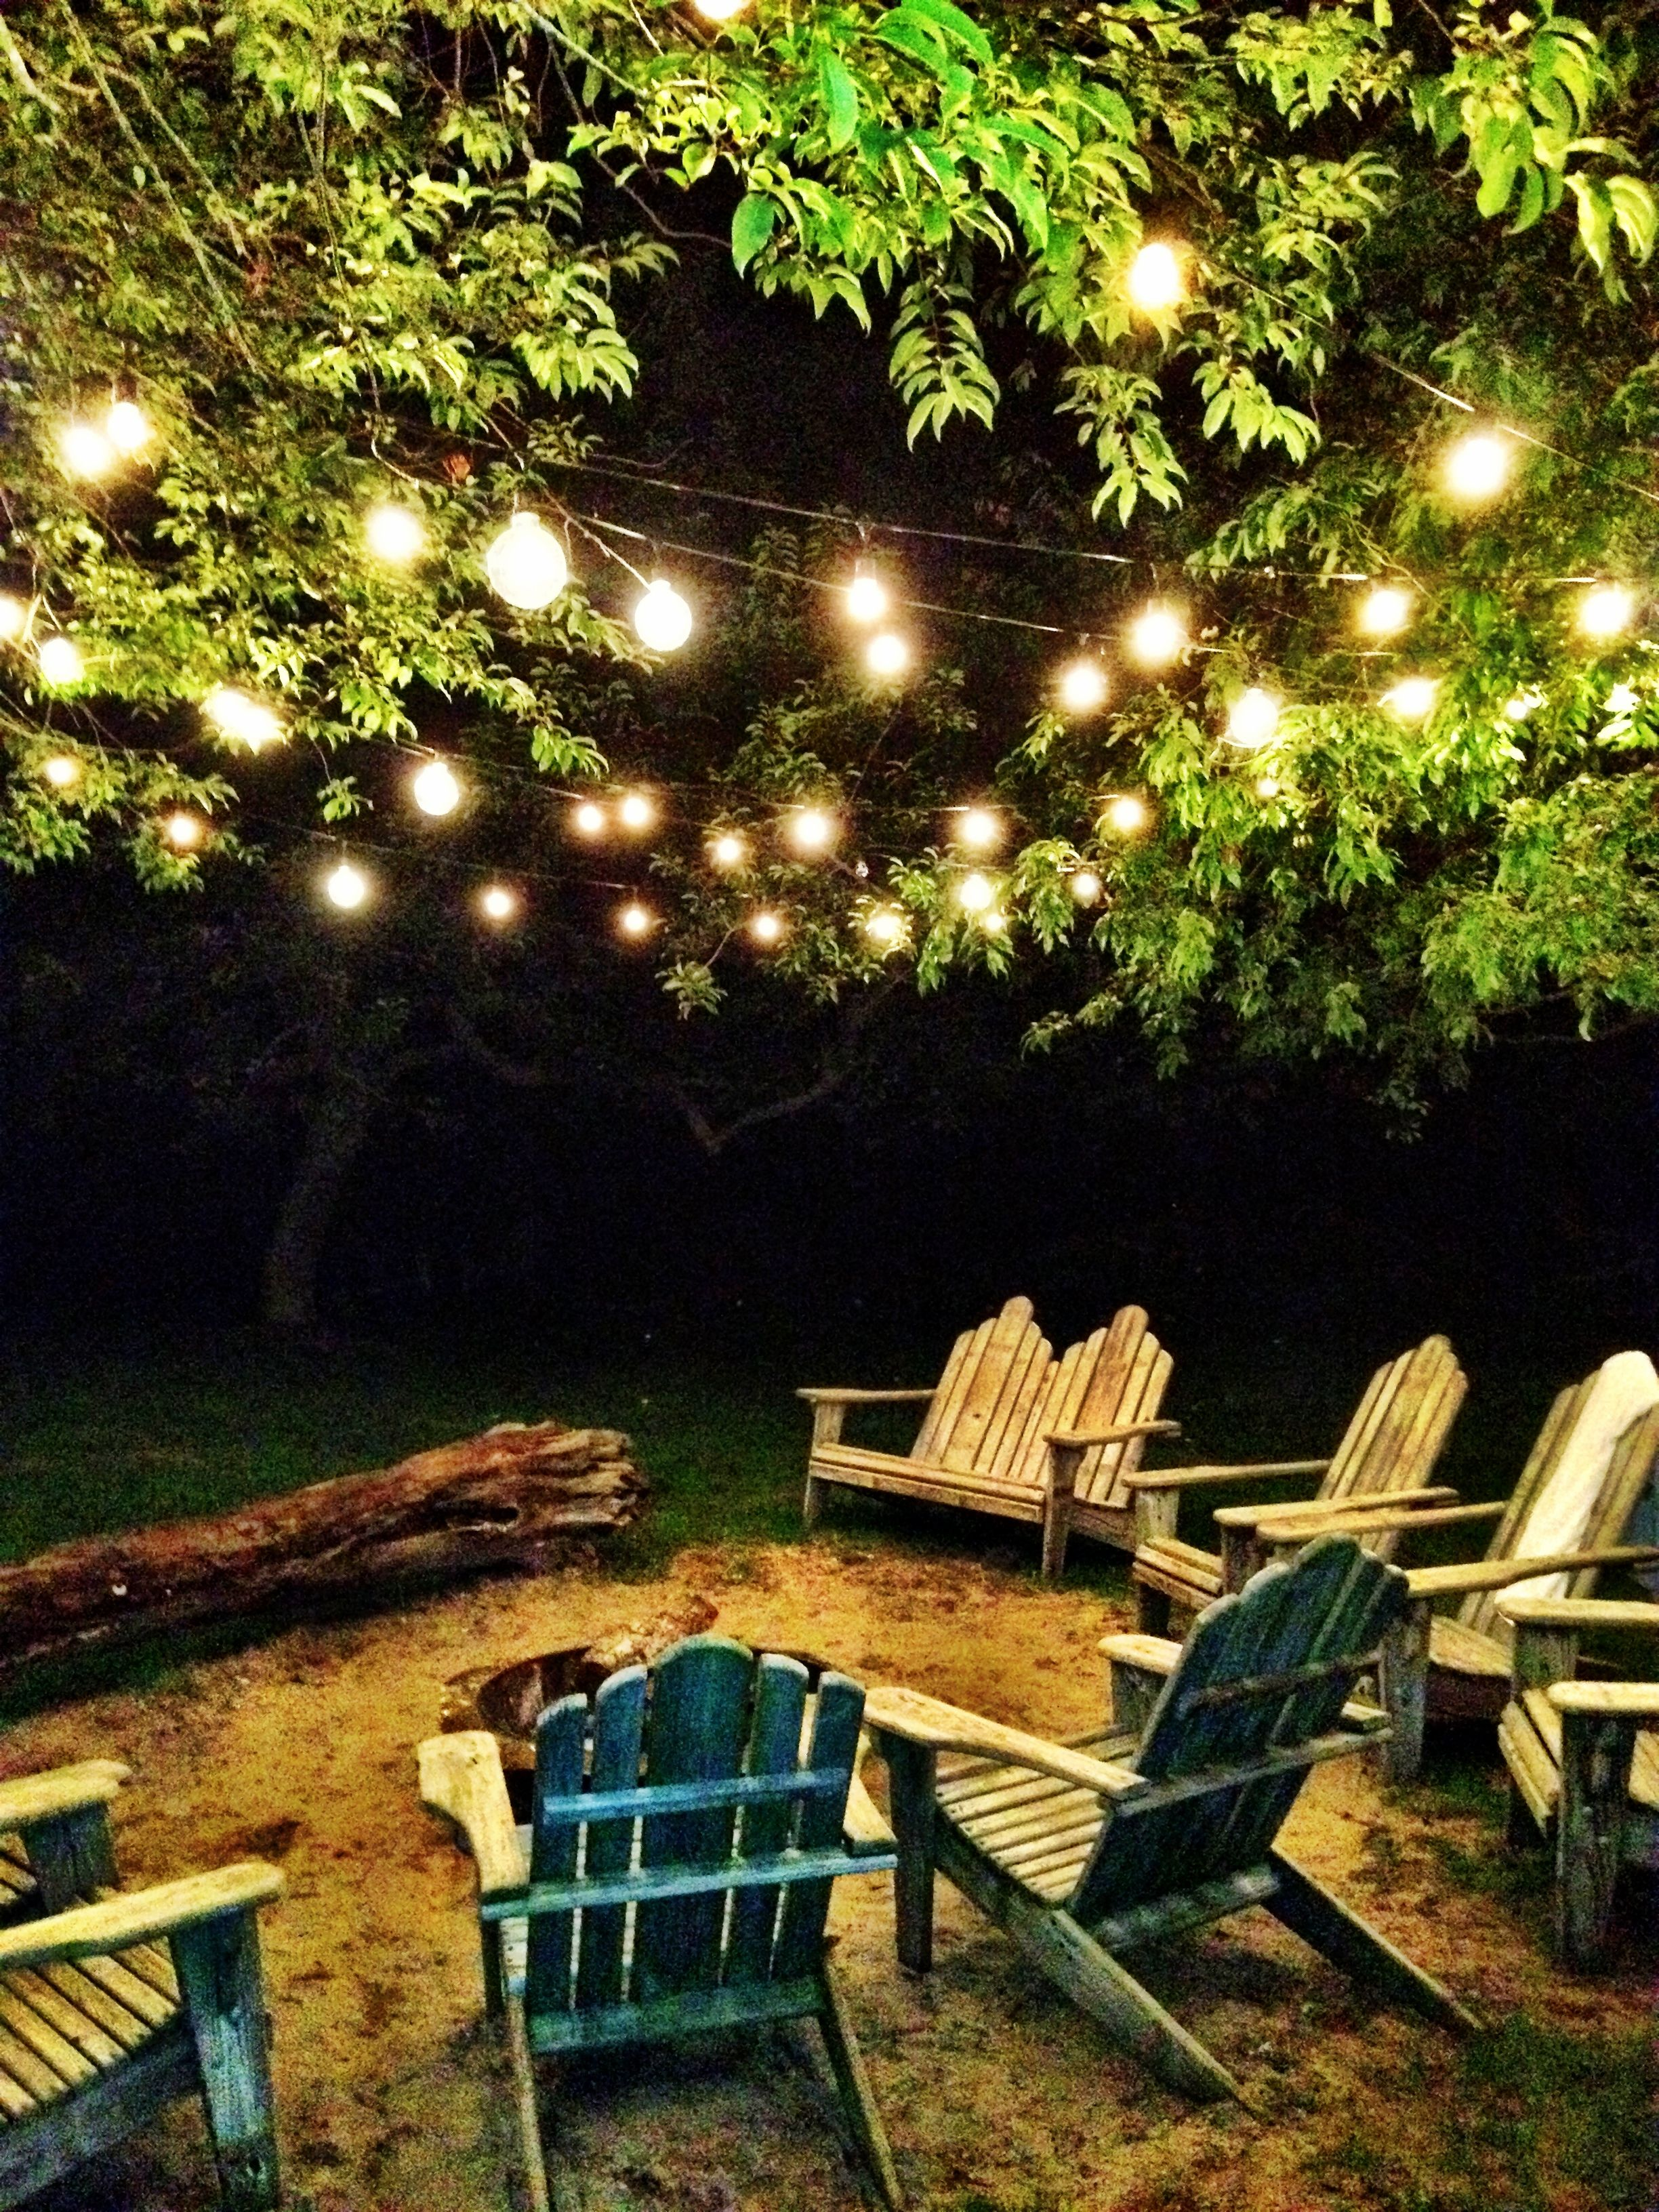 Lighting Outdoor Trees. Image Source Lighting Outdoor Trees